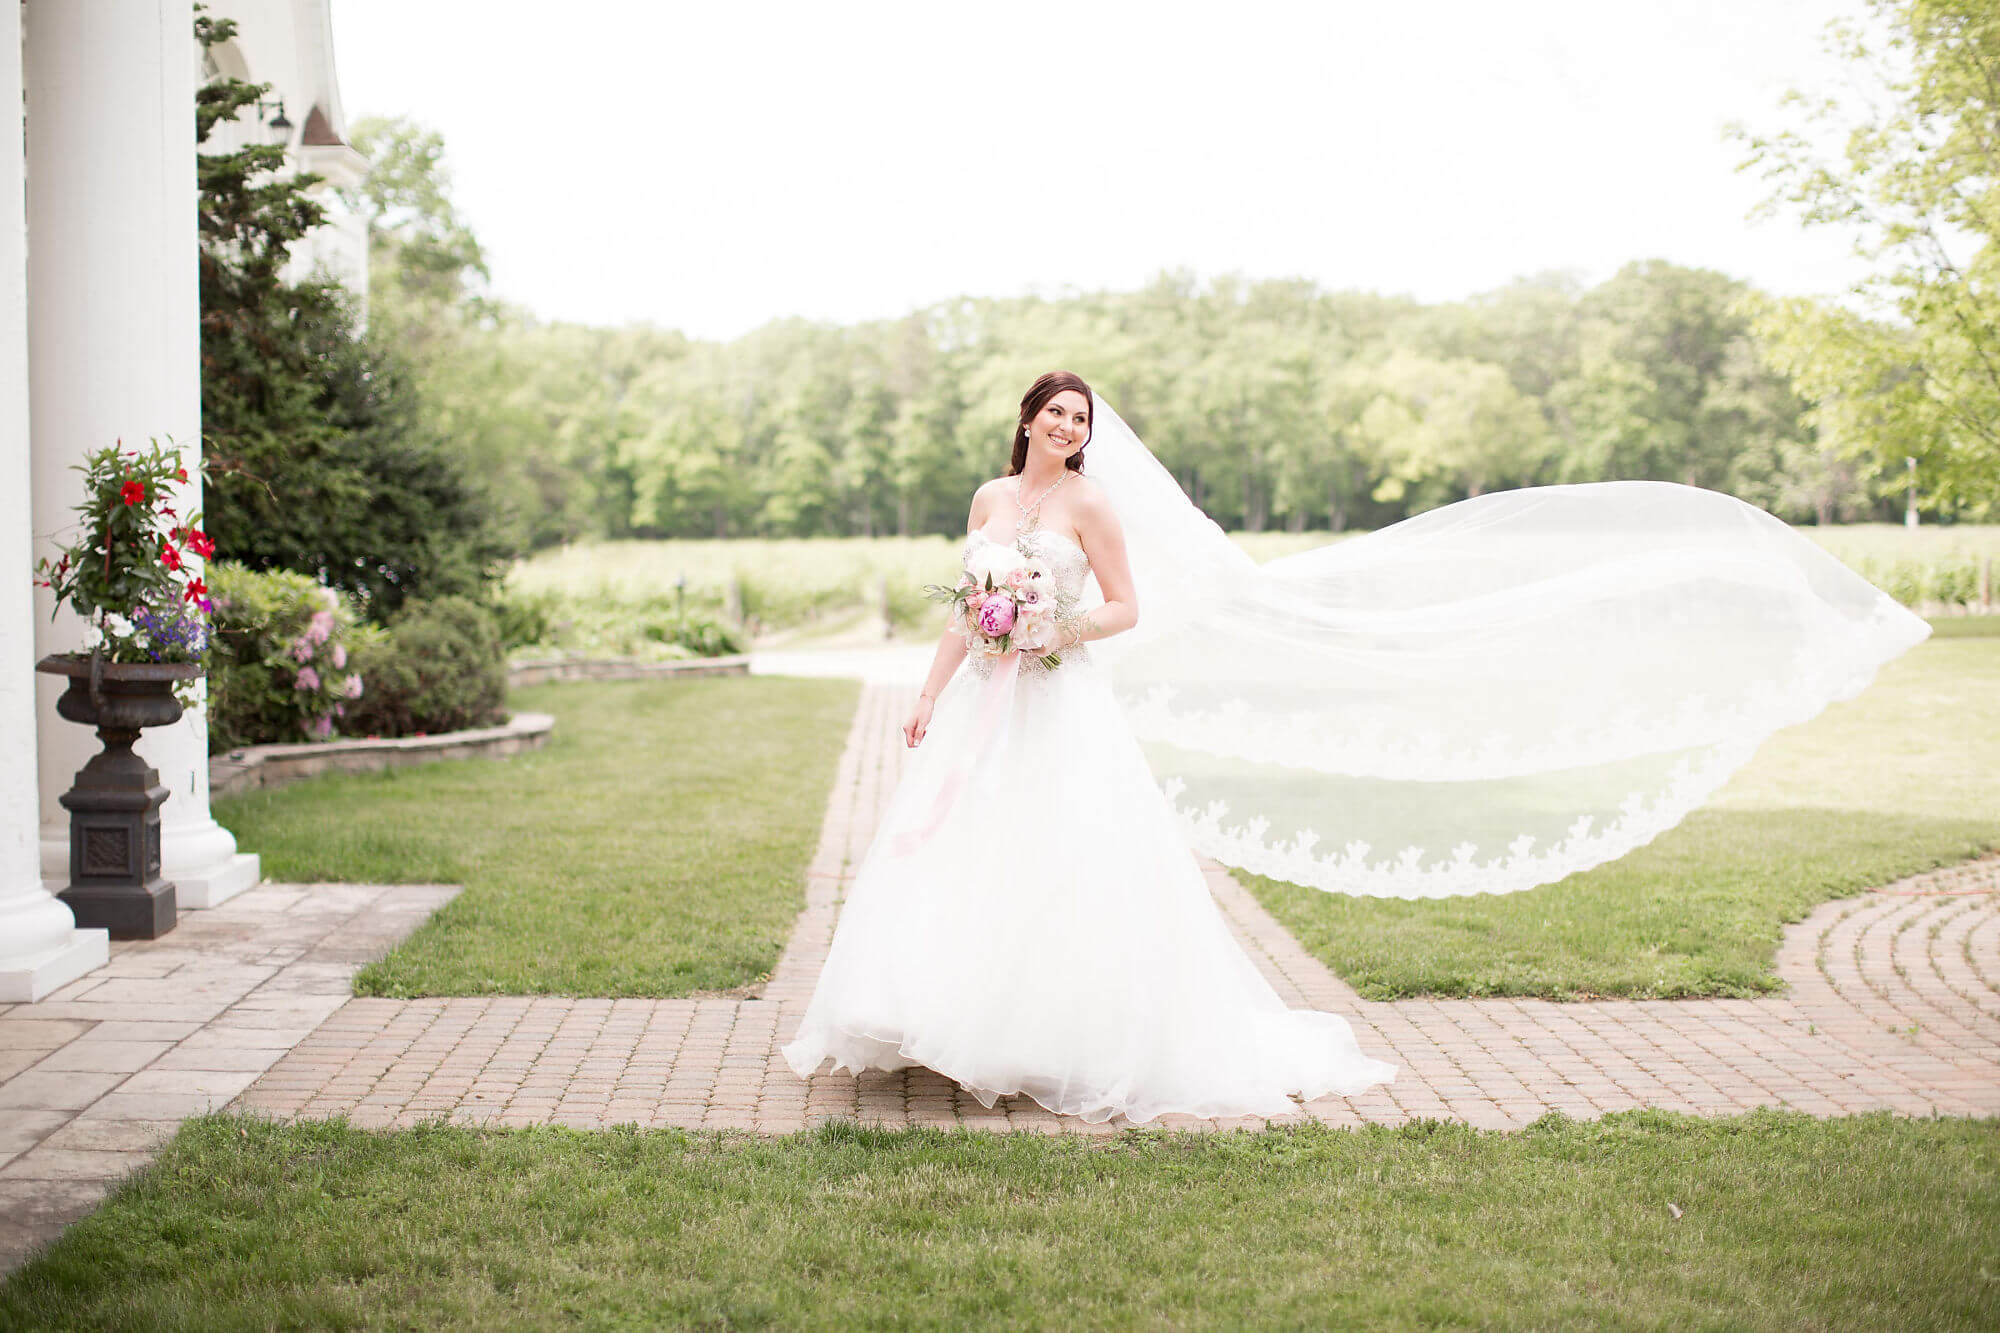 Whimsical photo of bride standing with veil blowing in the wind - Niagara wedding - Historia Wedding and Event Planning